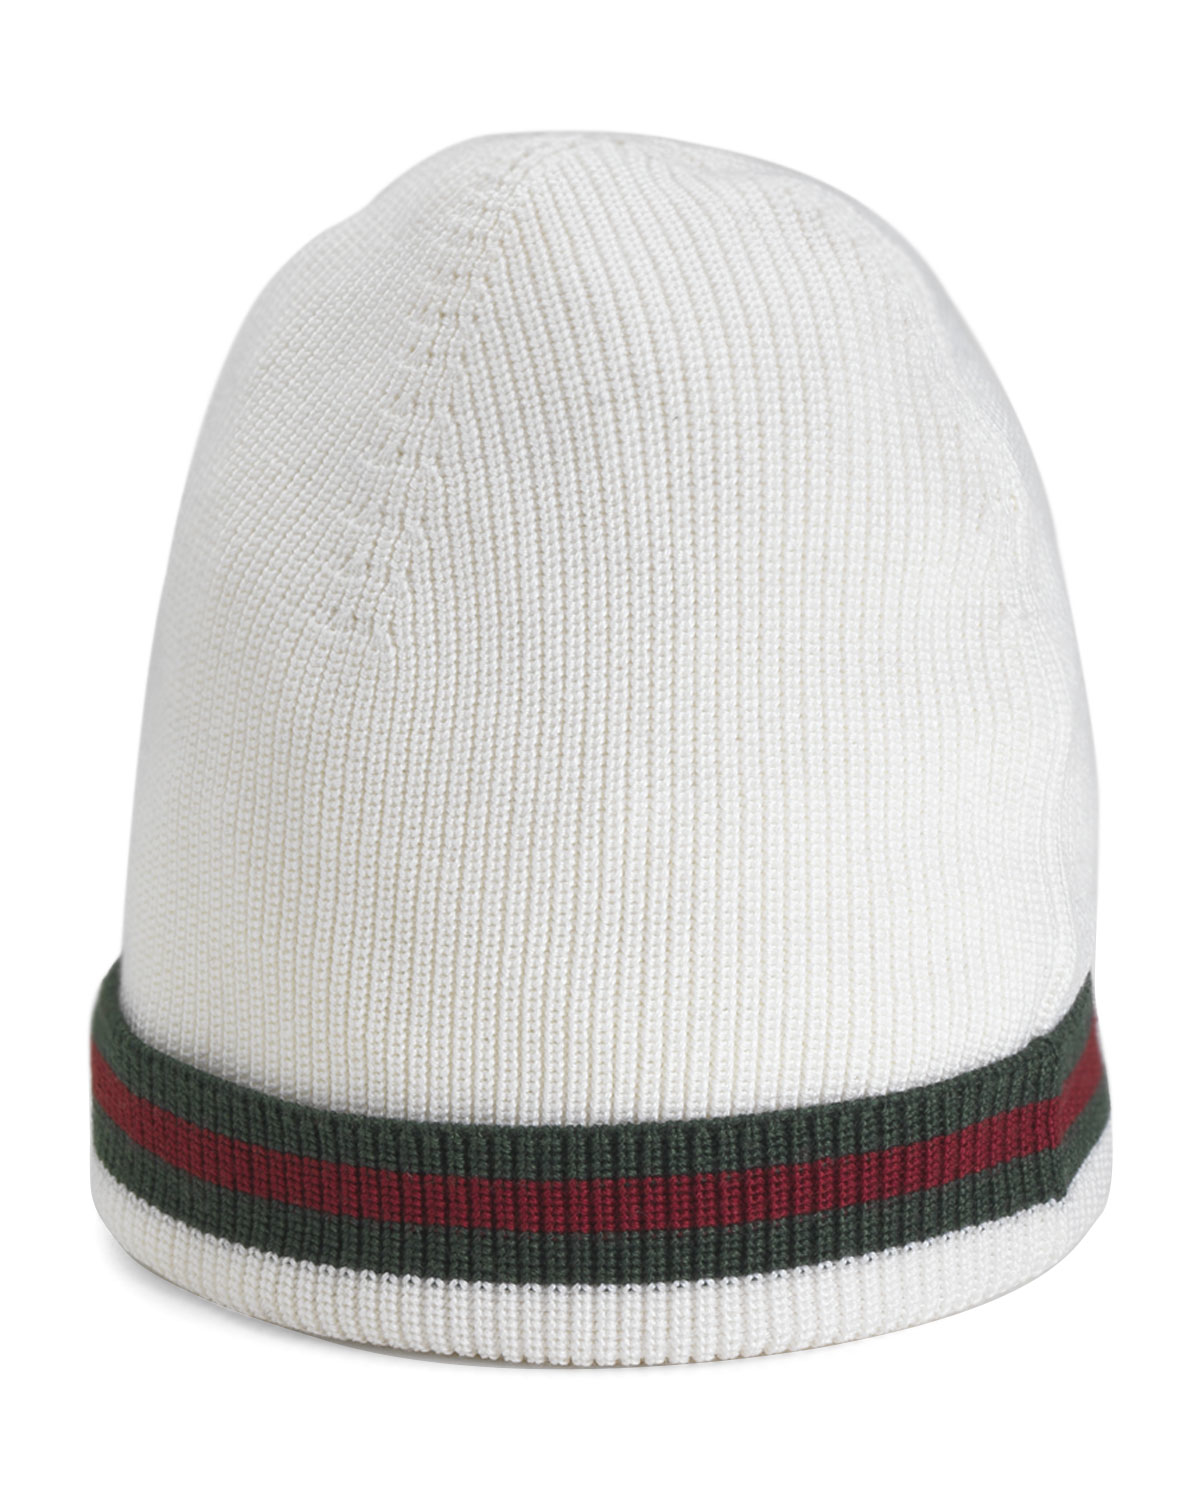 Lyst - Gucci Crook Knit Hat in White for Men 92006bdd6b3